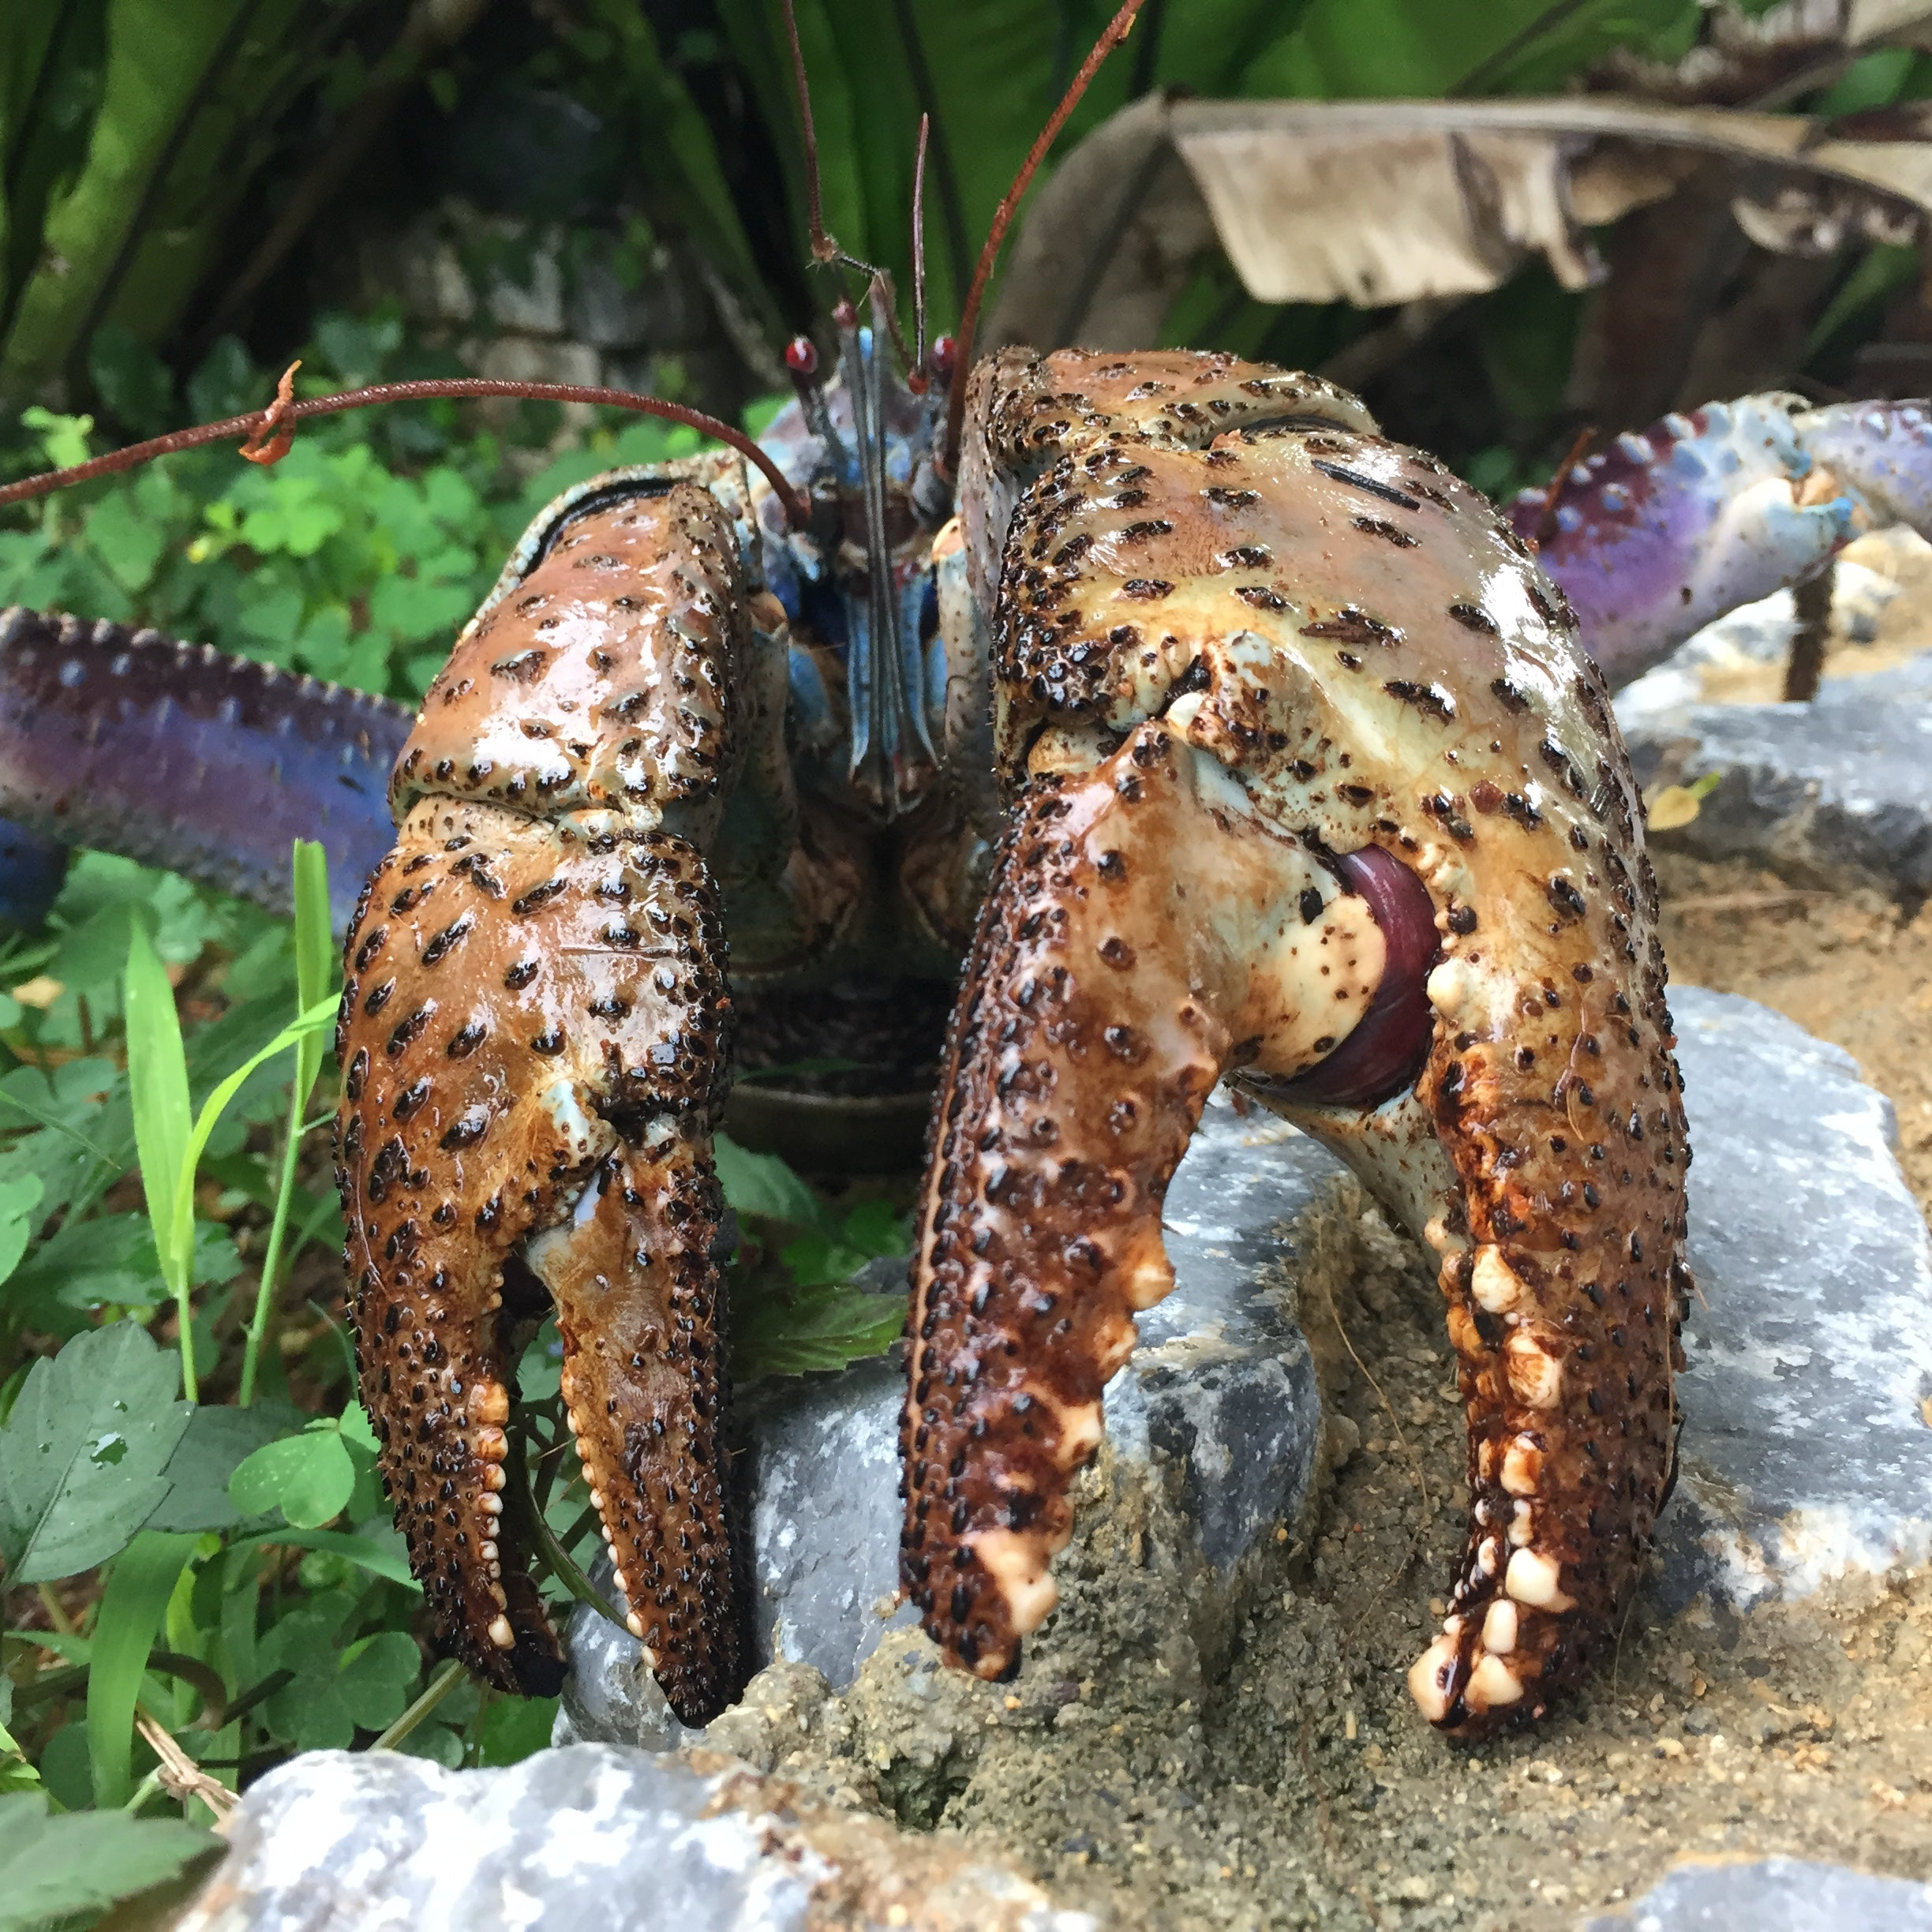 Coconut crab claws are insanely strong